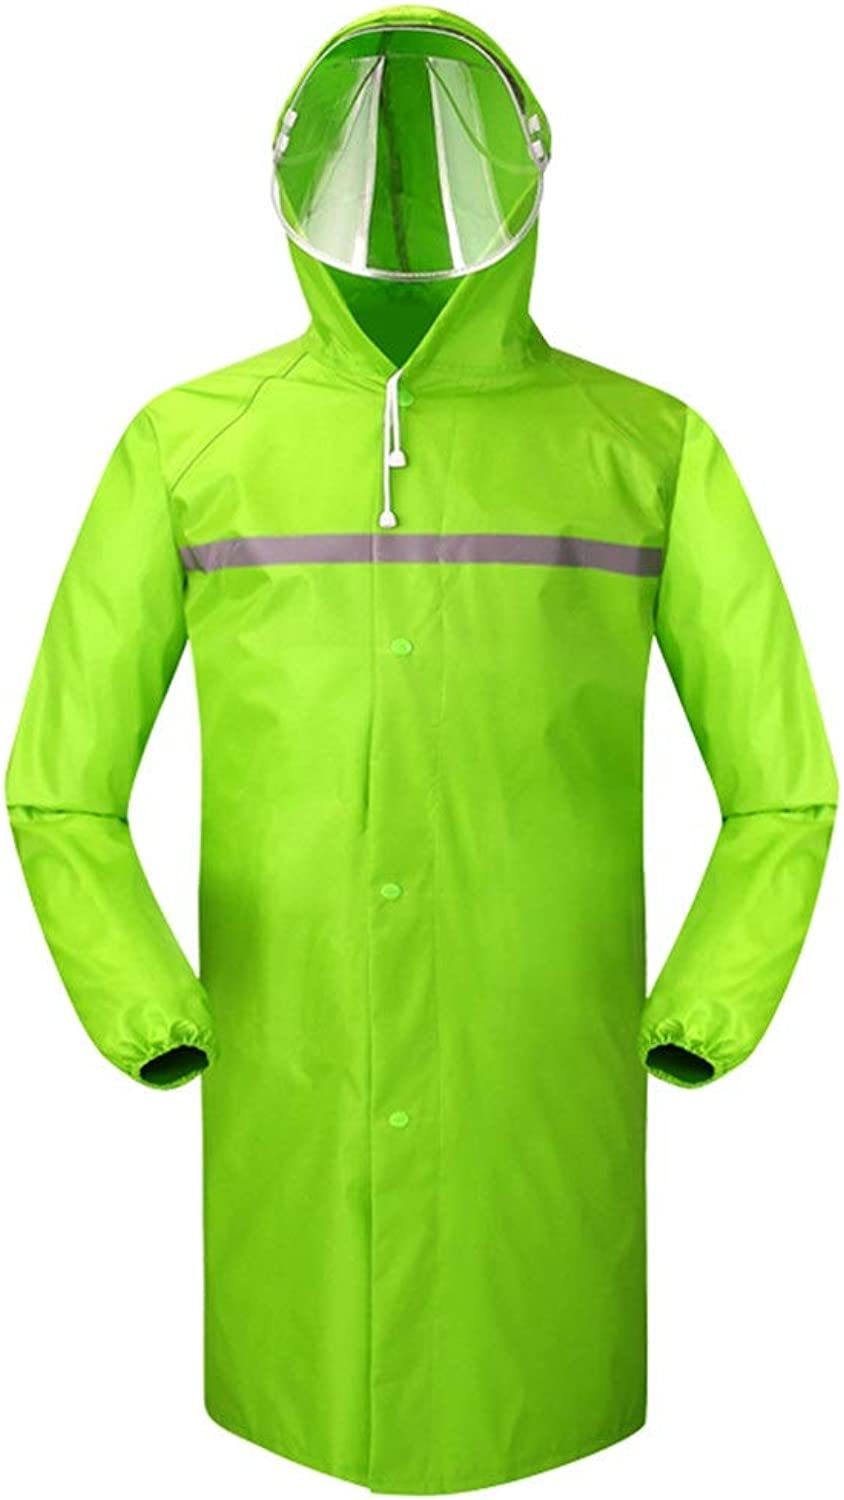 LJGG Raincoat Long Section Raincoat Waterproof Male Female Adult Hiking Breathable Poncho (color   Green, Size   L)